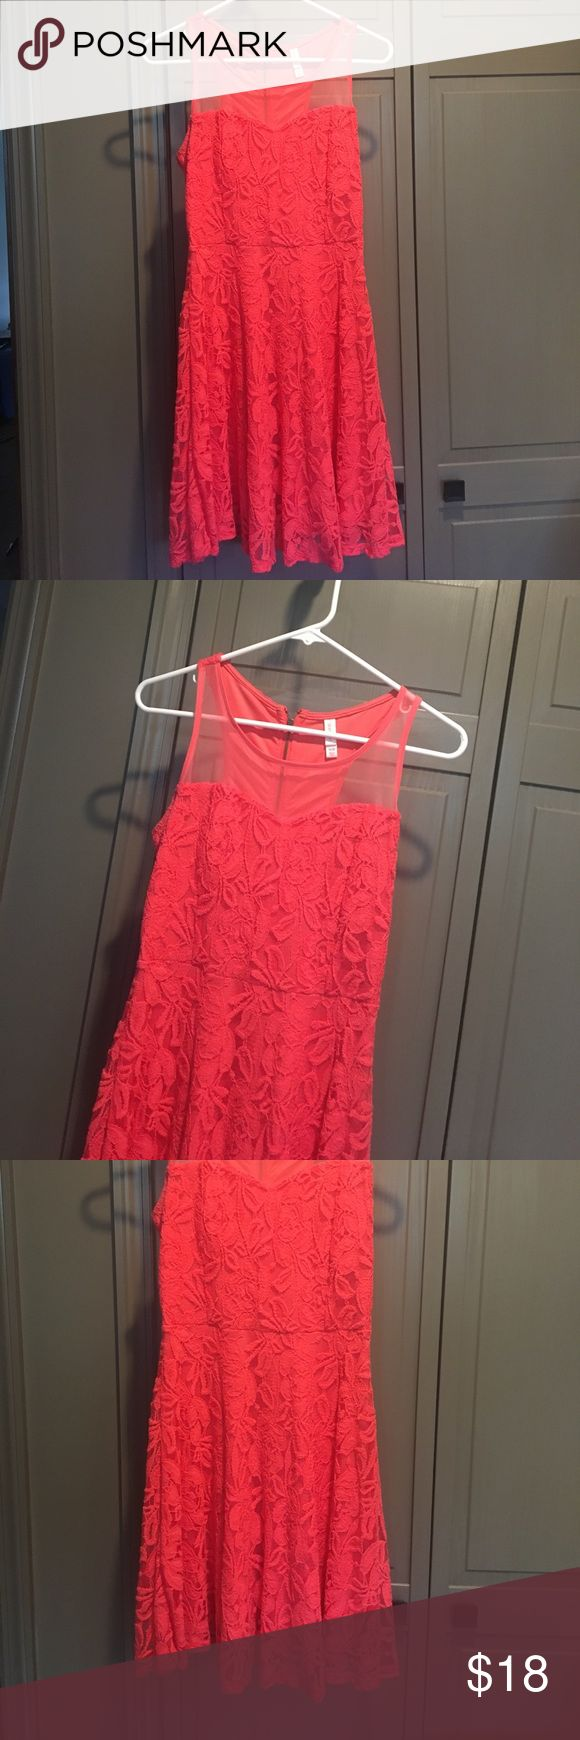 Kohls Xhilaration orange lace dress sz medium Kohls Xhilaration bright deep orange/red lace dress sz medium. Worn twice for a party. In good condition. Xhilaration Dresses Mini